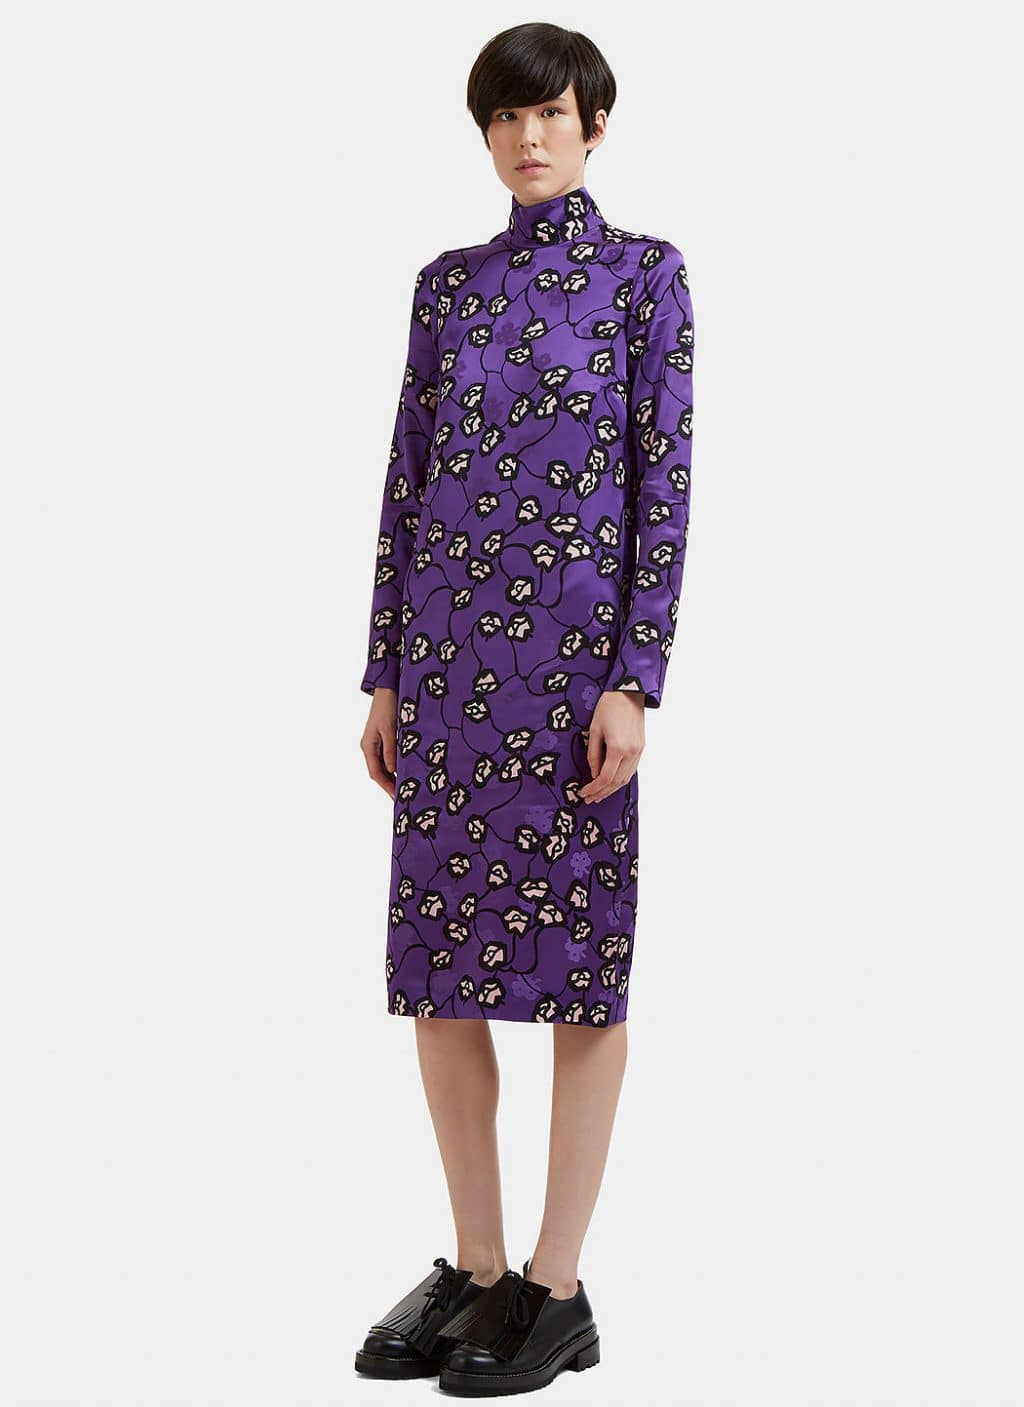 MARNI Floral Roll Neck Purple Dress